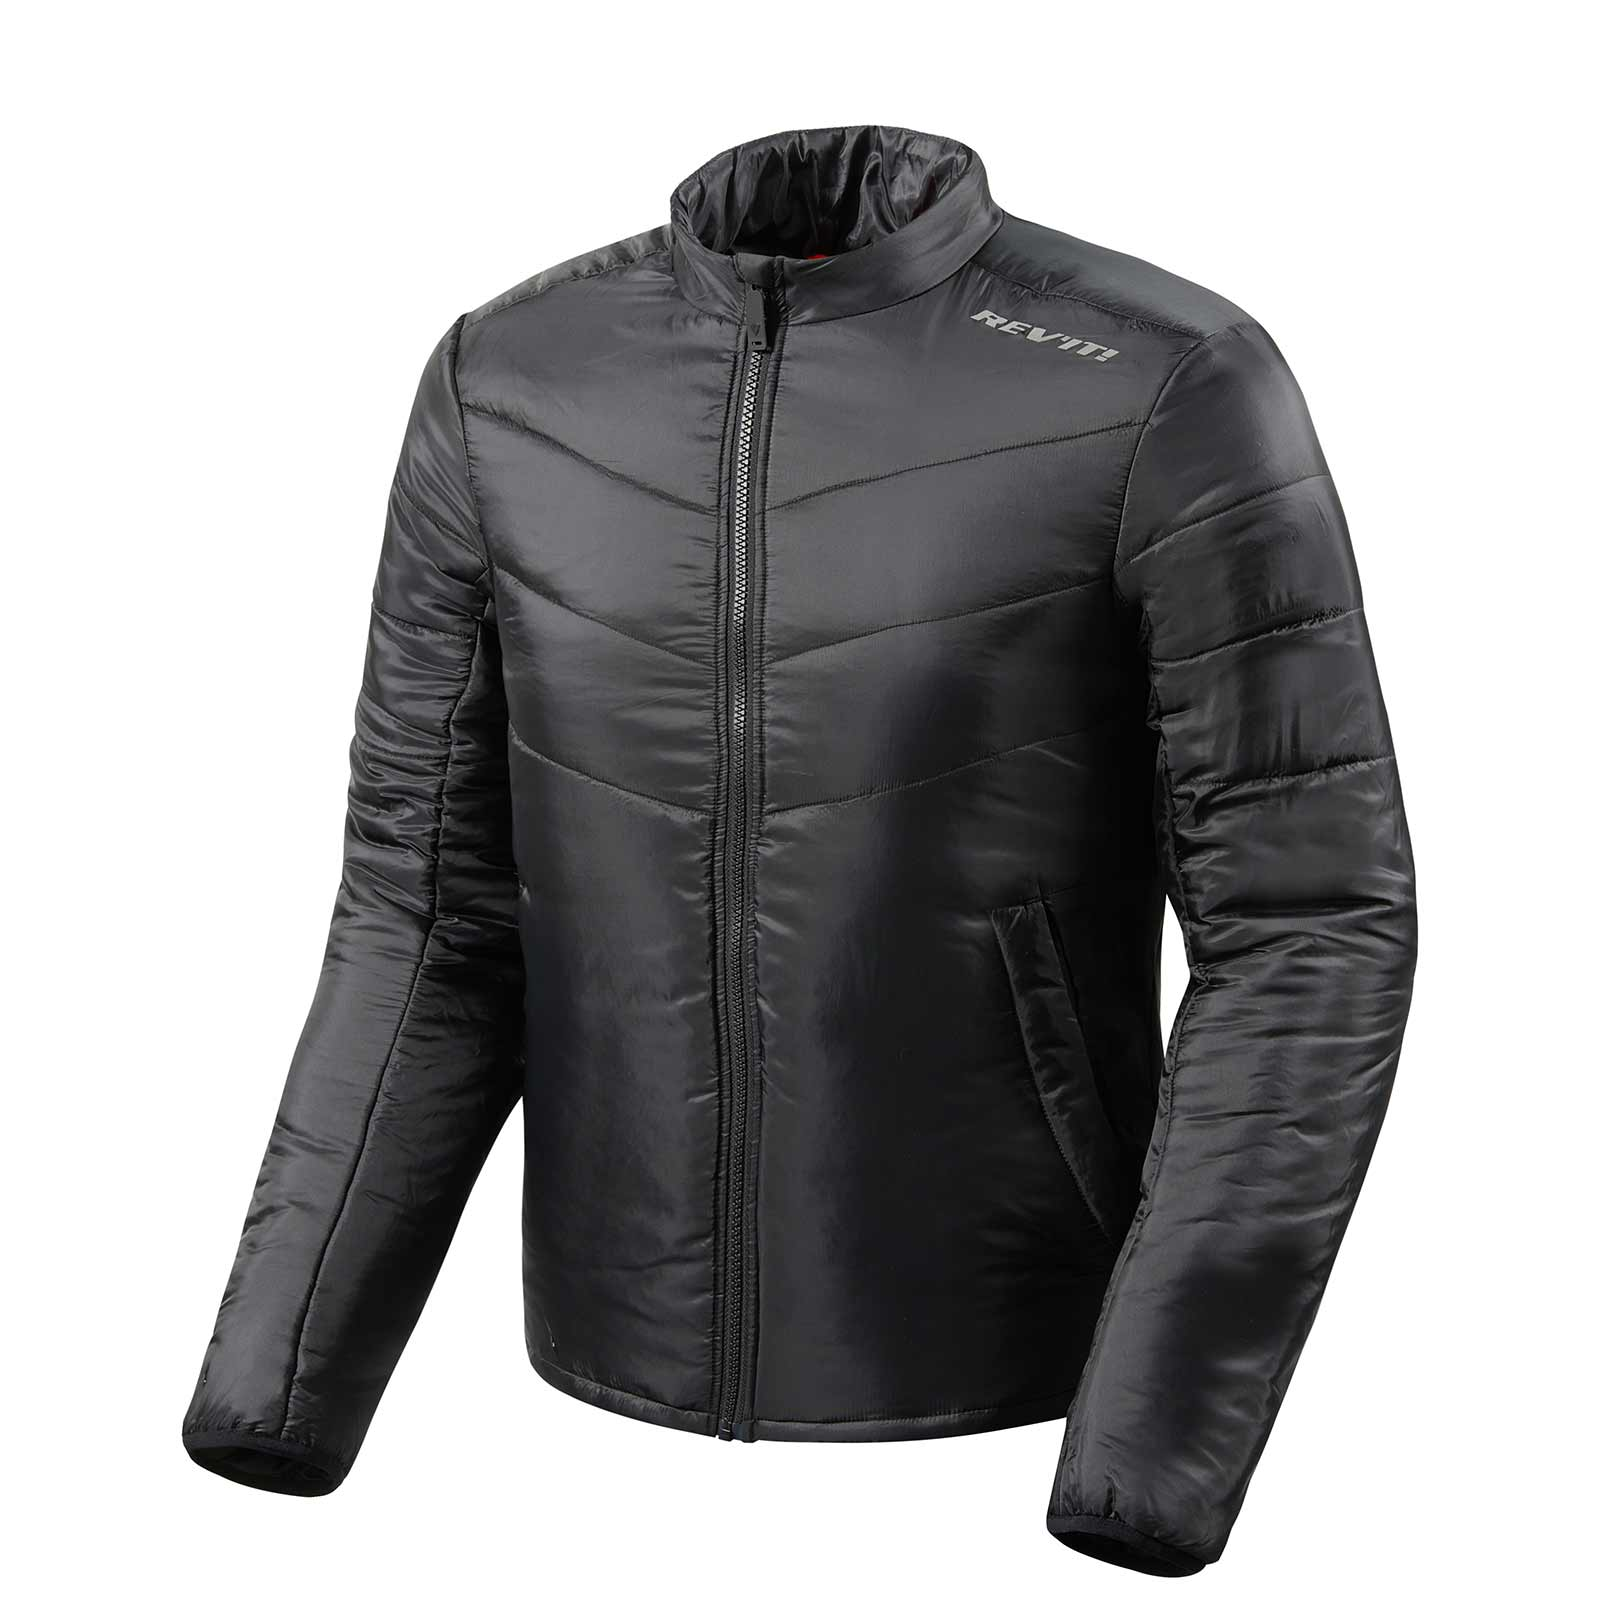 REV'IT! Core Men's Mid Layer Jacket - 421 Moto Gear